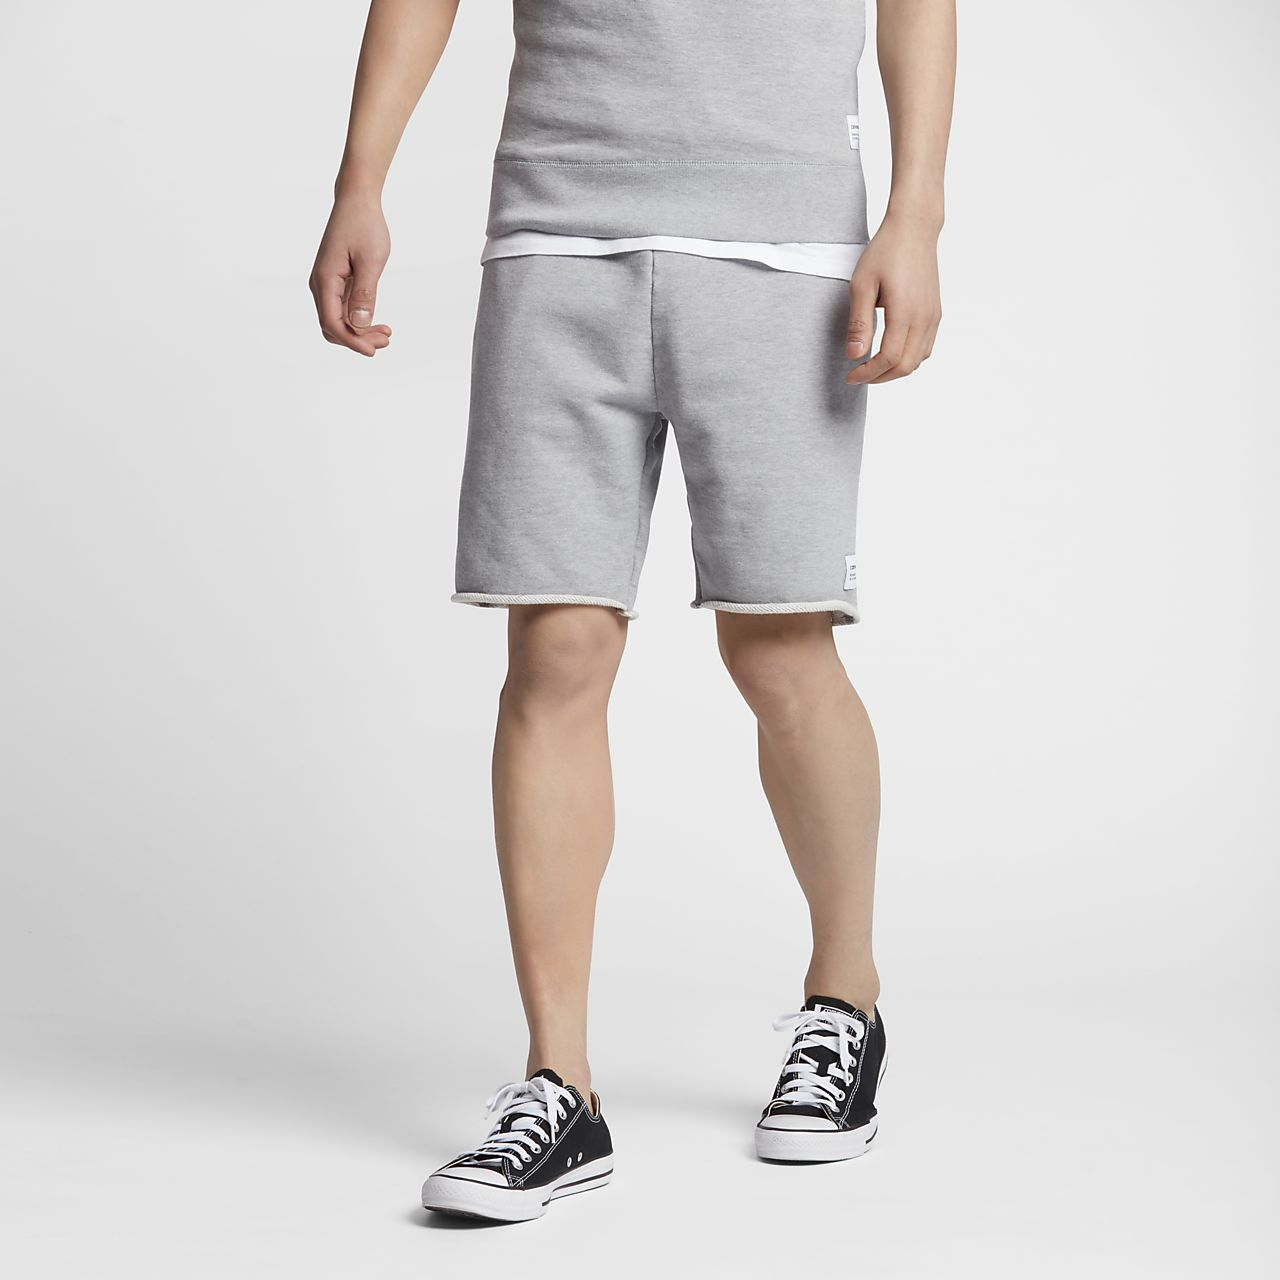 converse cotton shorts